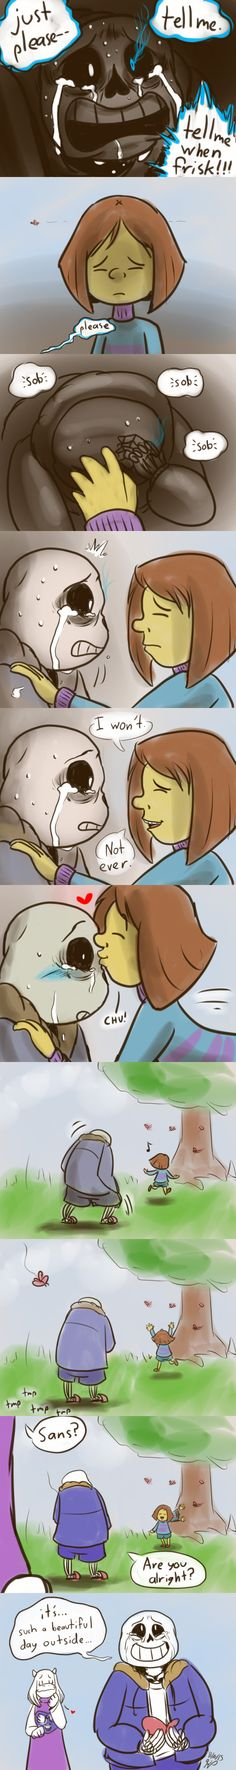 Reset - Sans and Frisk - comic (3/3) - http://nintendonut1.tumblr.com/post/132587878628/reset